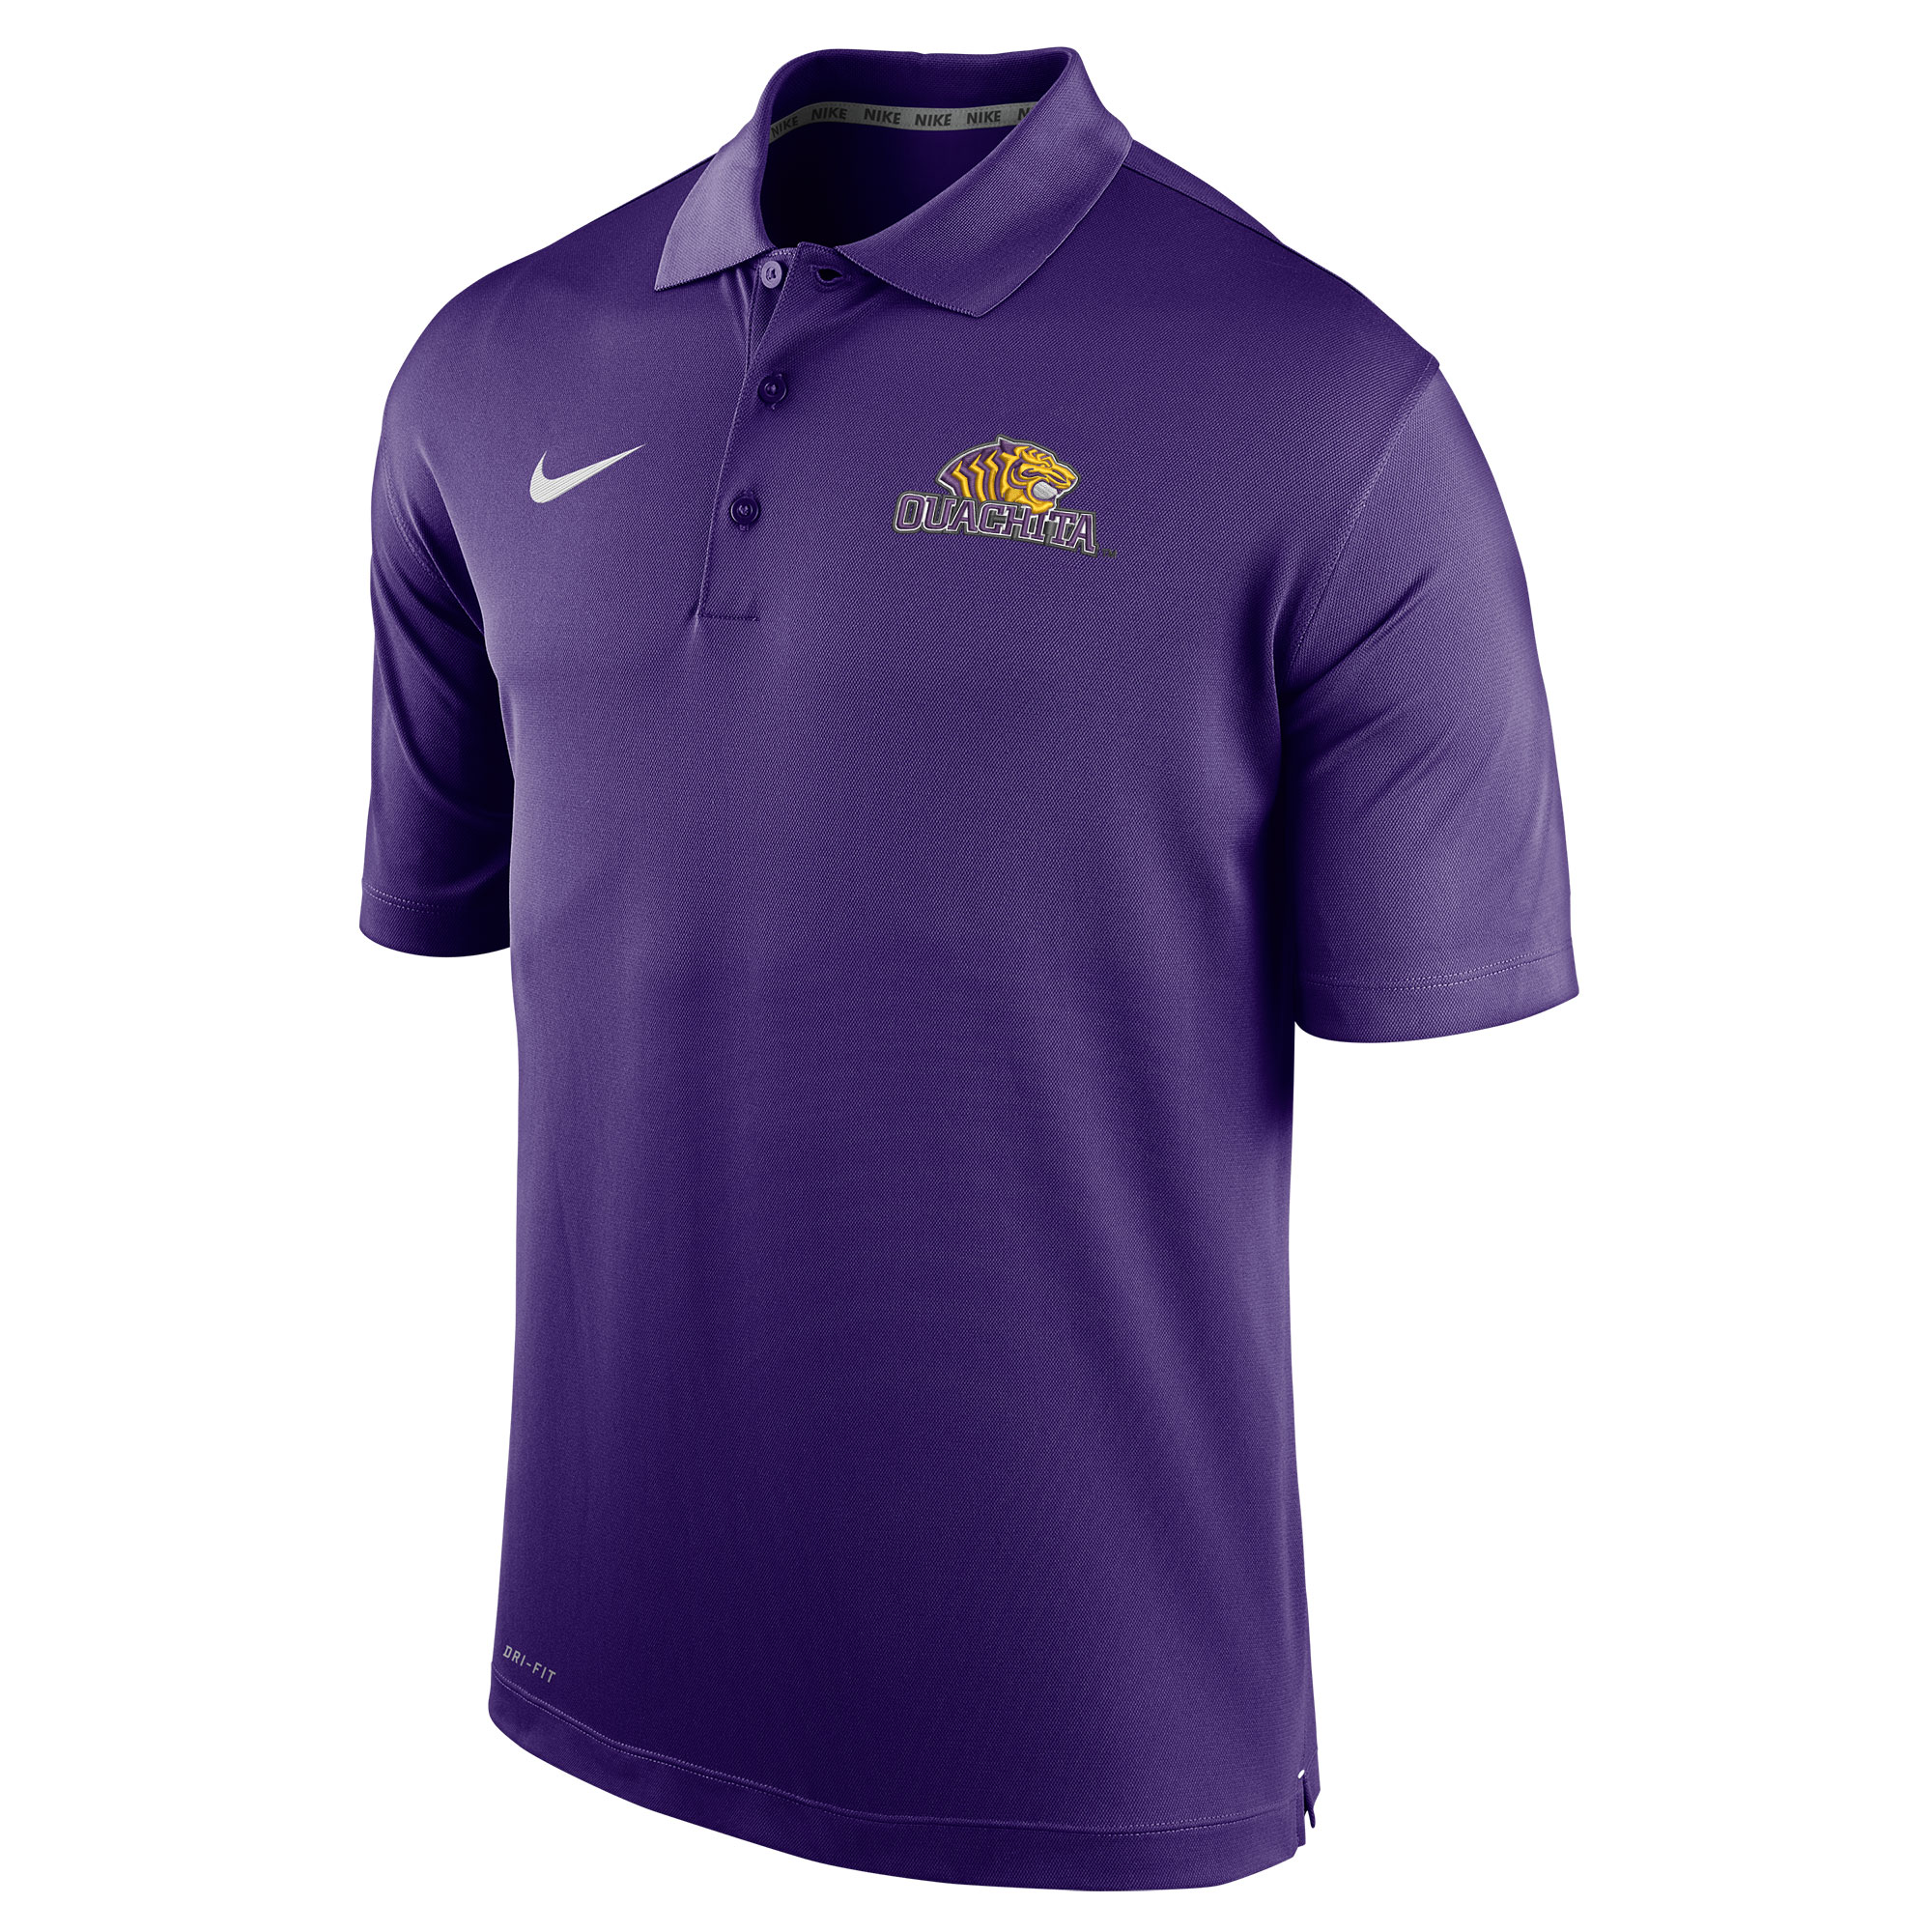 OUACHITA VARSITY PERFORMANCE POLO